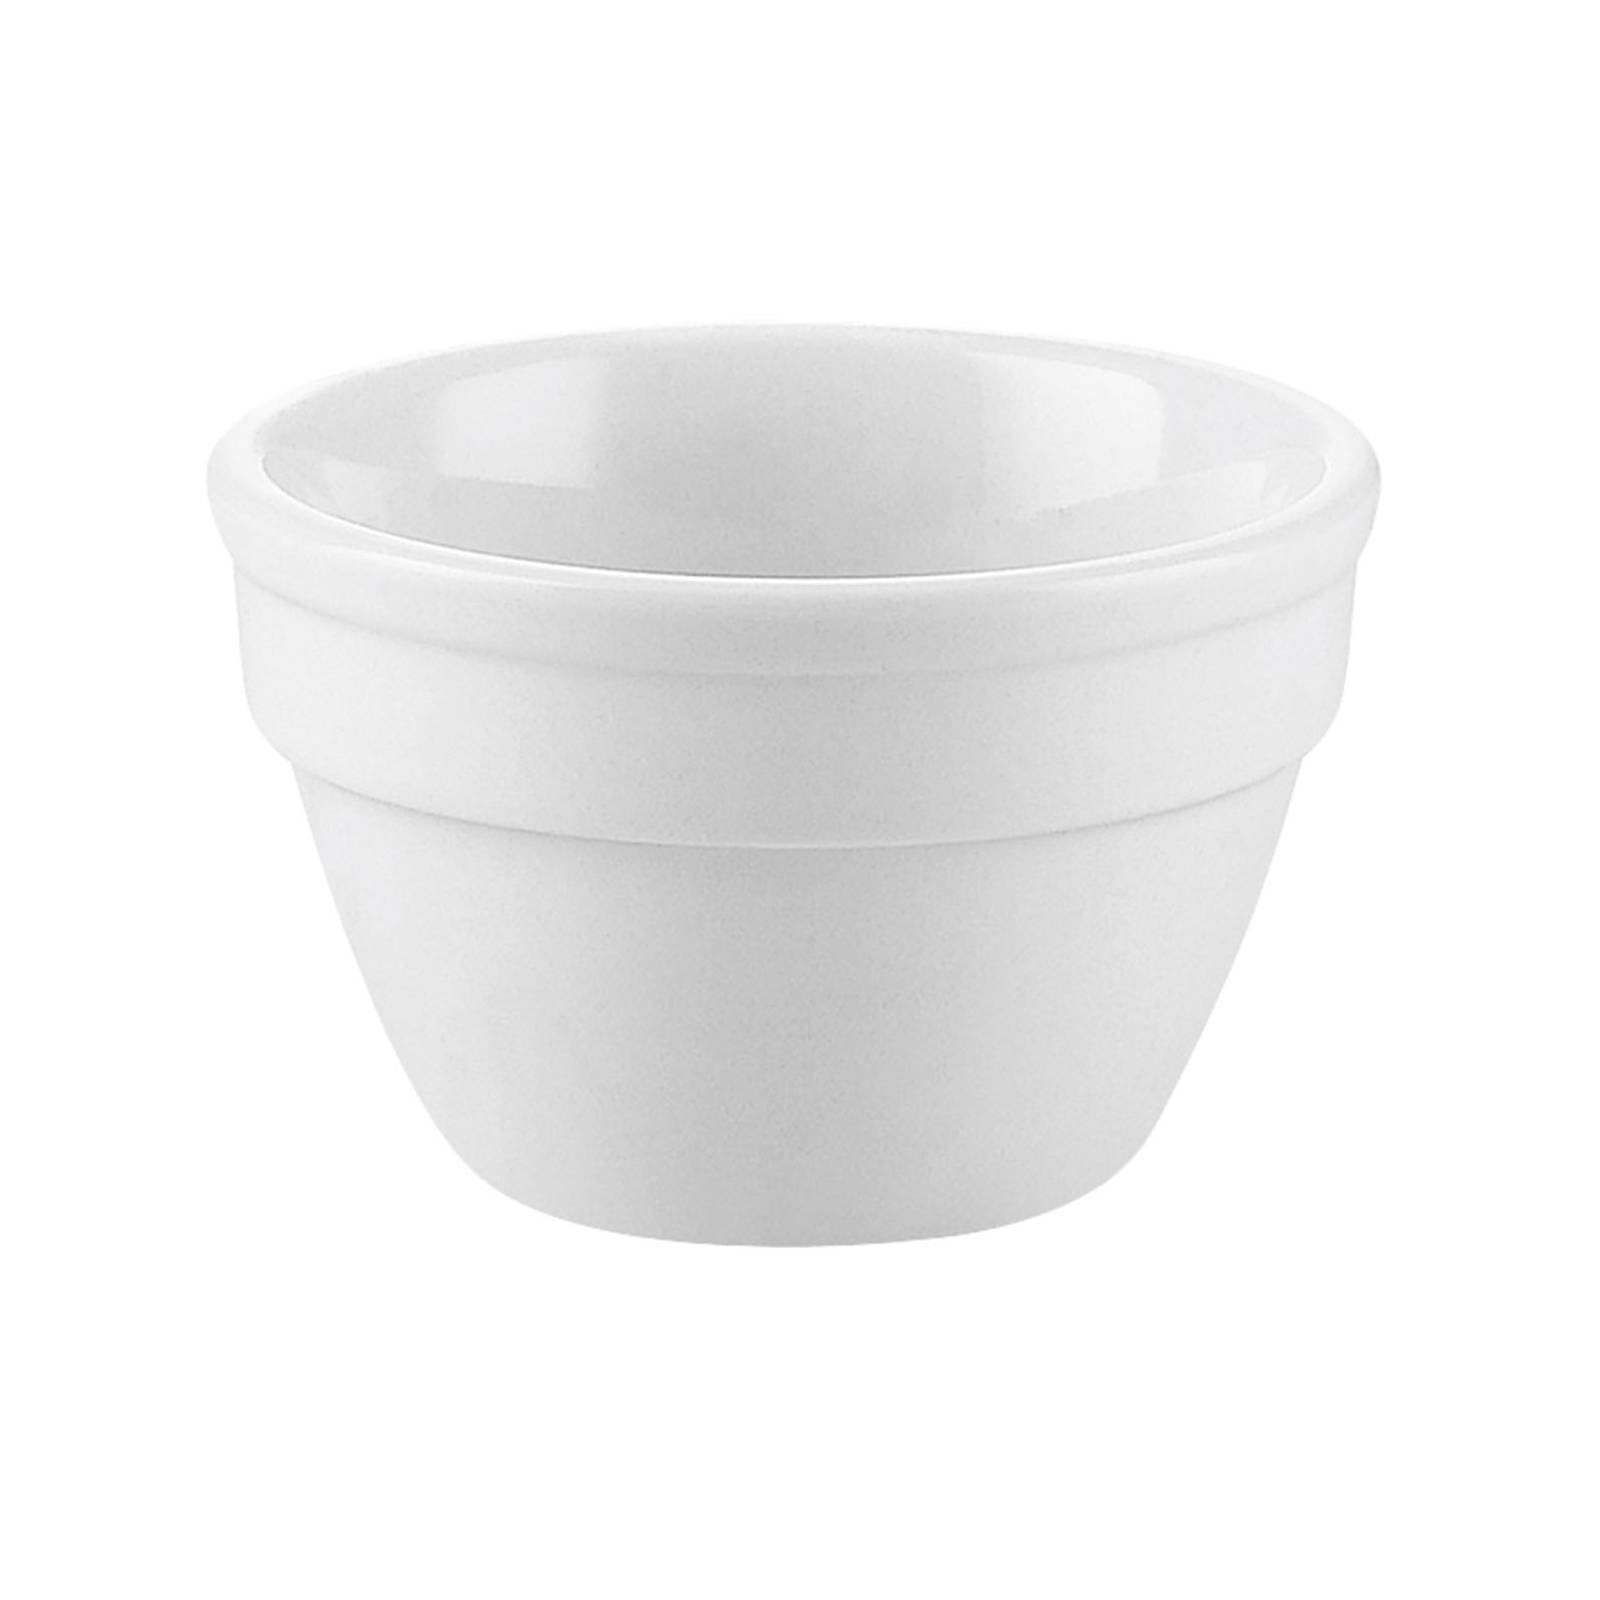 CAC China RCN-B545 china, bowl,  9 - 16 oz